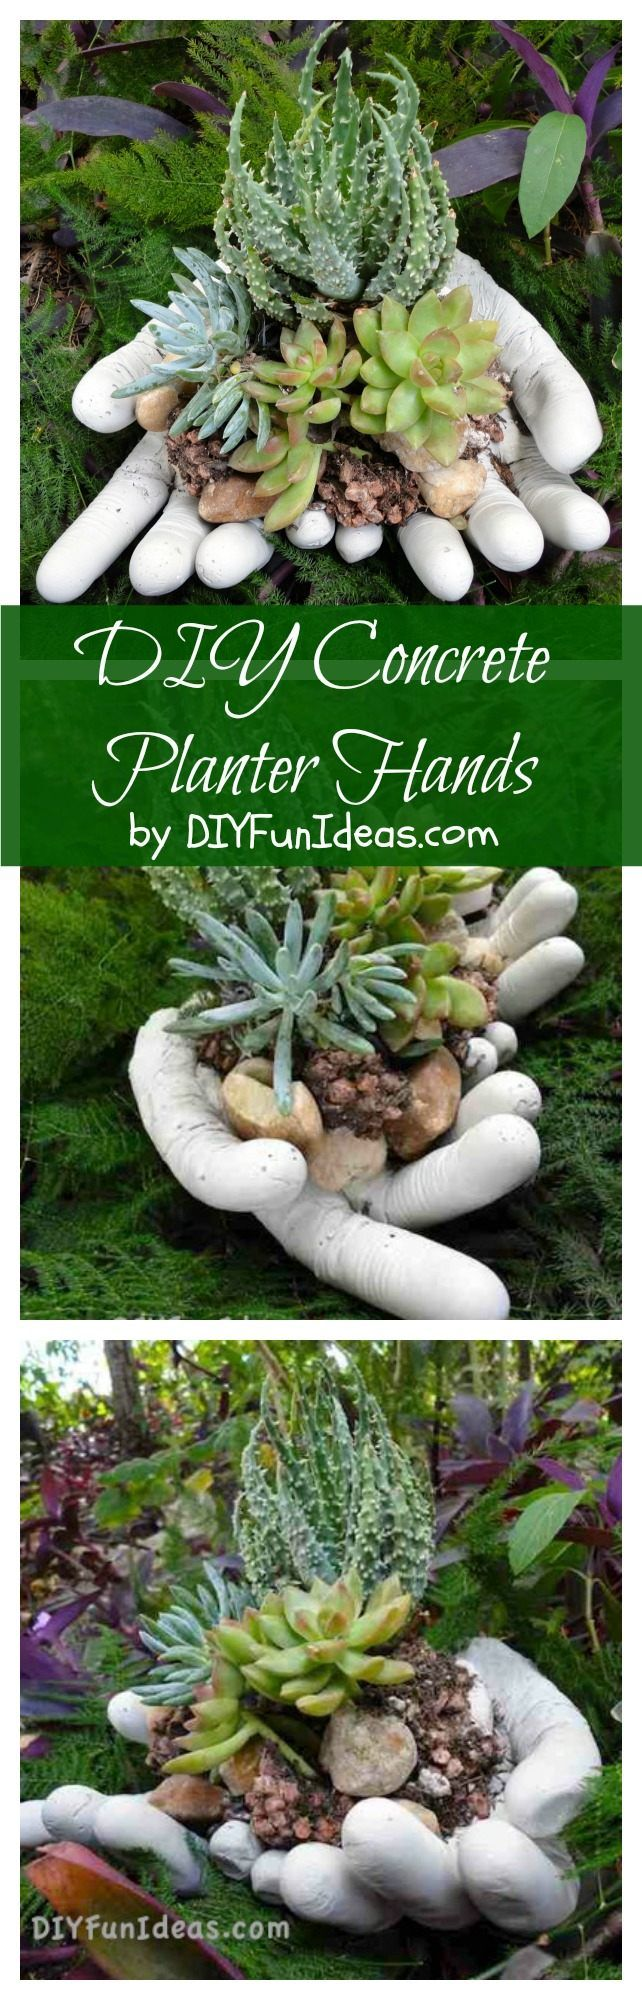 Make these DIY concrete planter hands for your succulents in only 20 minutes! So easy! By Jenise @ DIYFUNIDEAS.COM